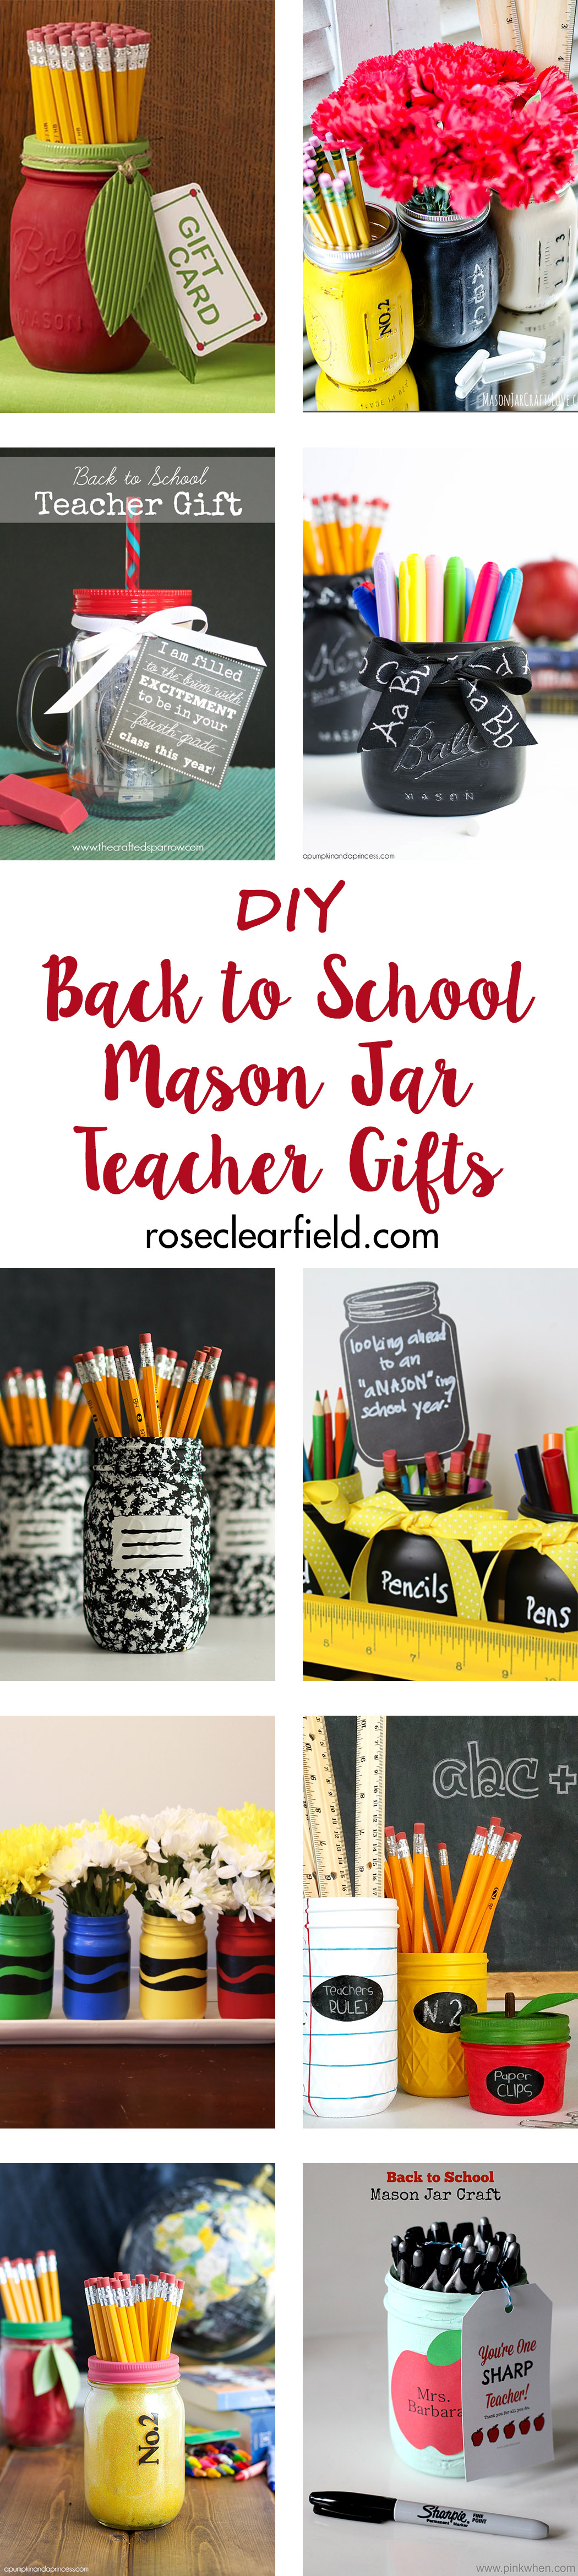 DIY Back to School Mason Jar Teacher Gifts | http://www.roseclearfield.com